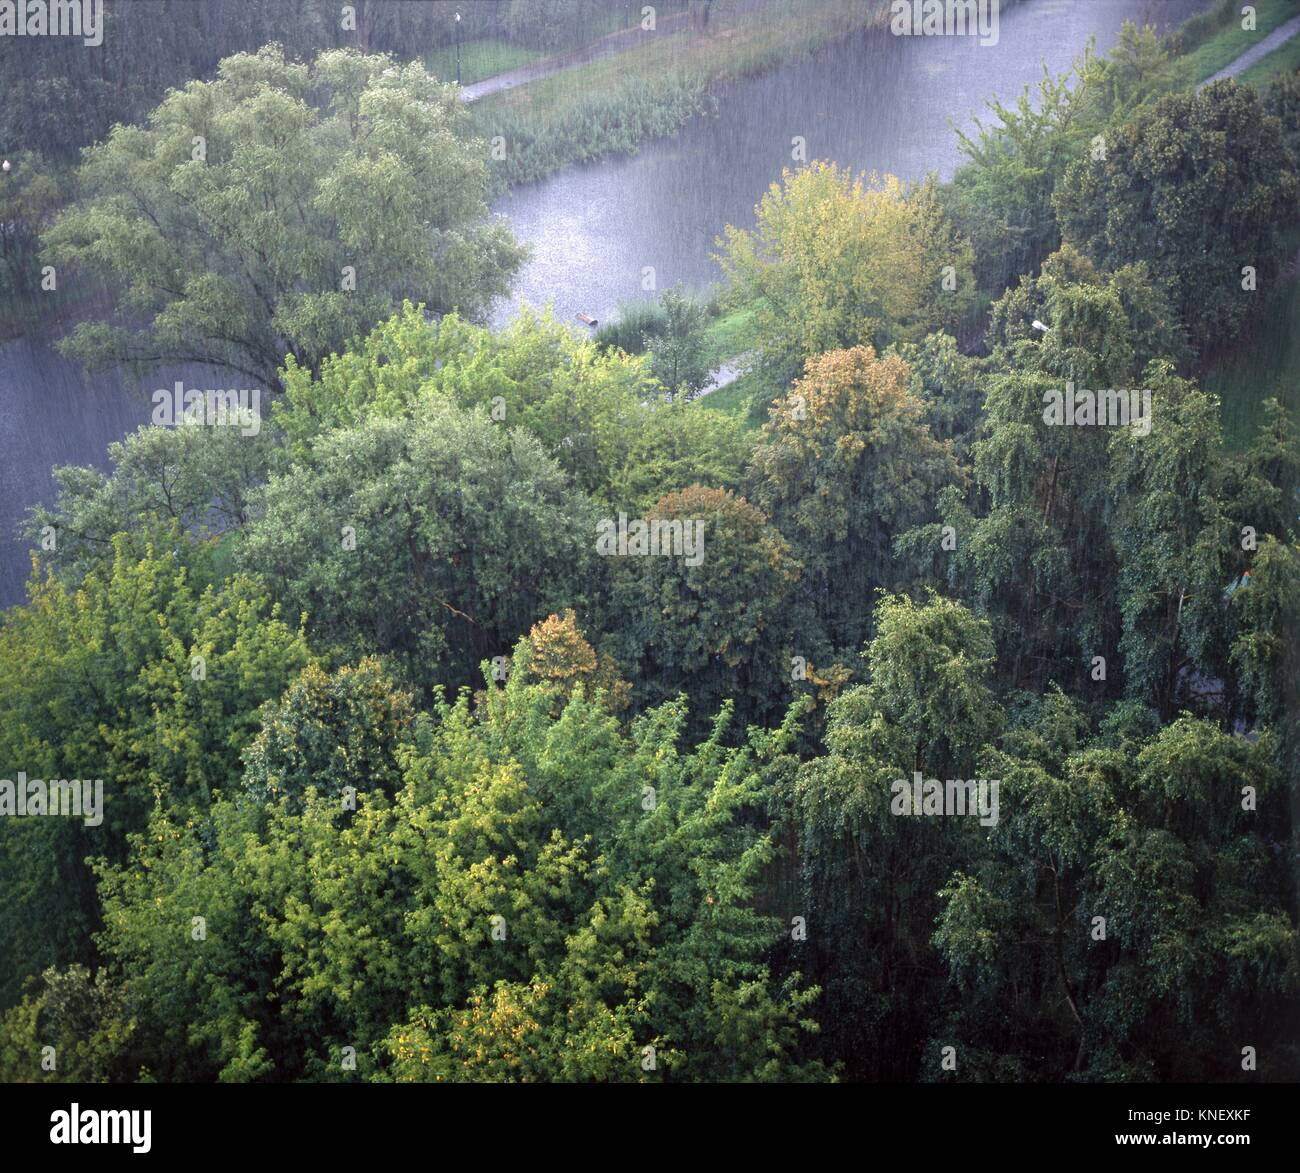 Summer rain. Poland - Stock Image